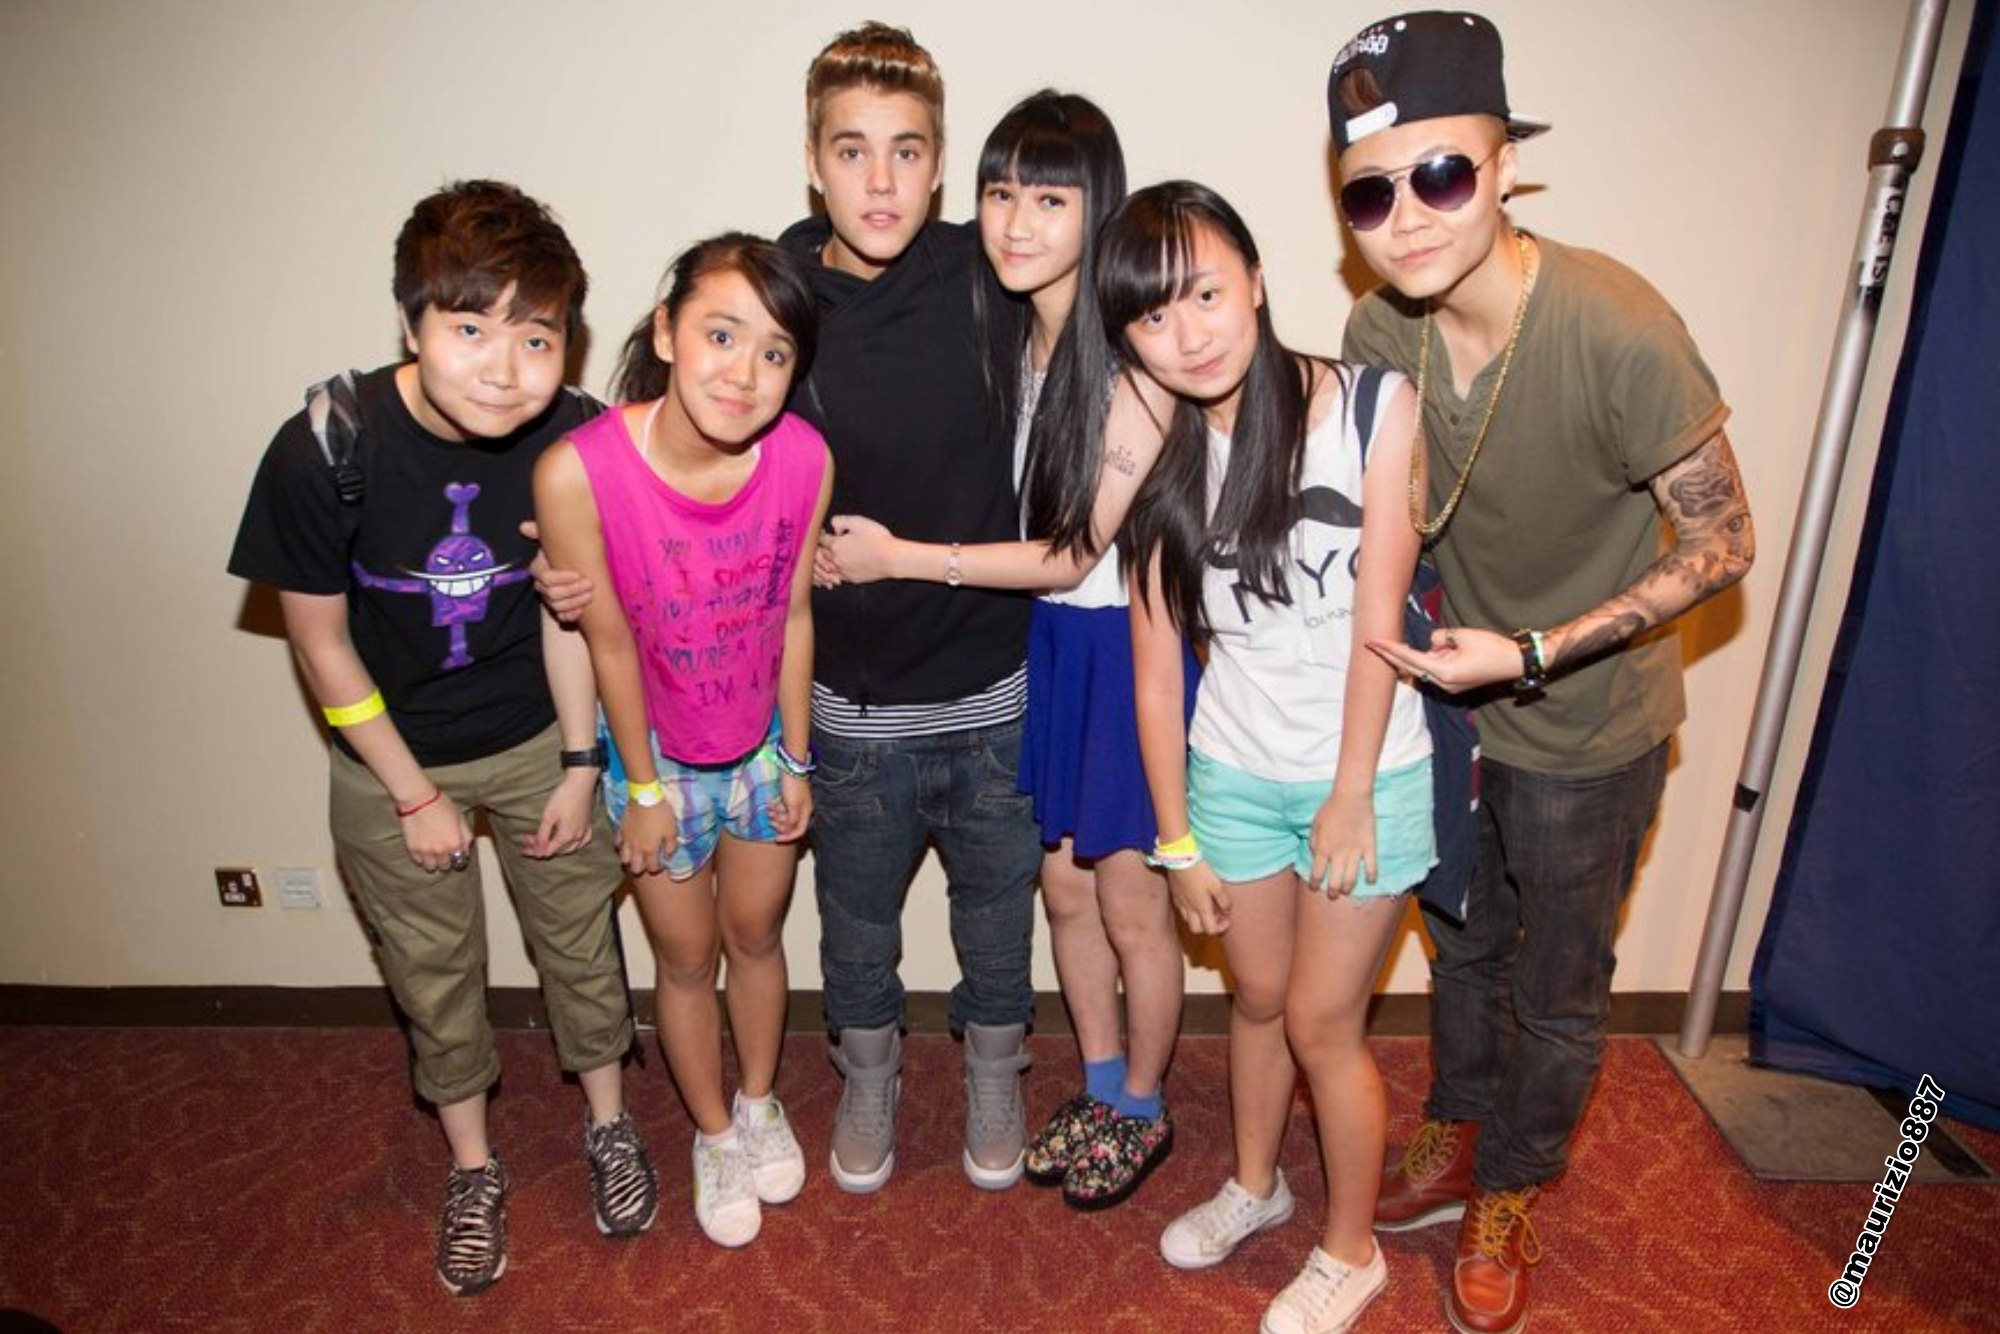 Justin Bieber Images Justin Bieber Meet And Greet Macau 12oct 2013